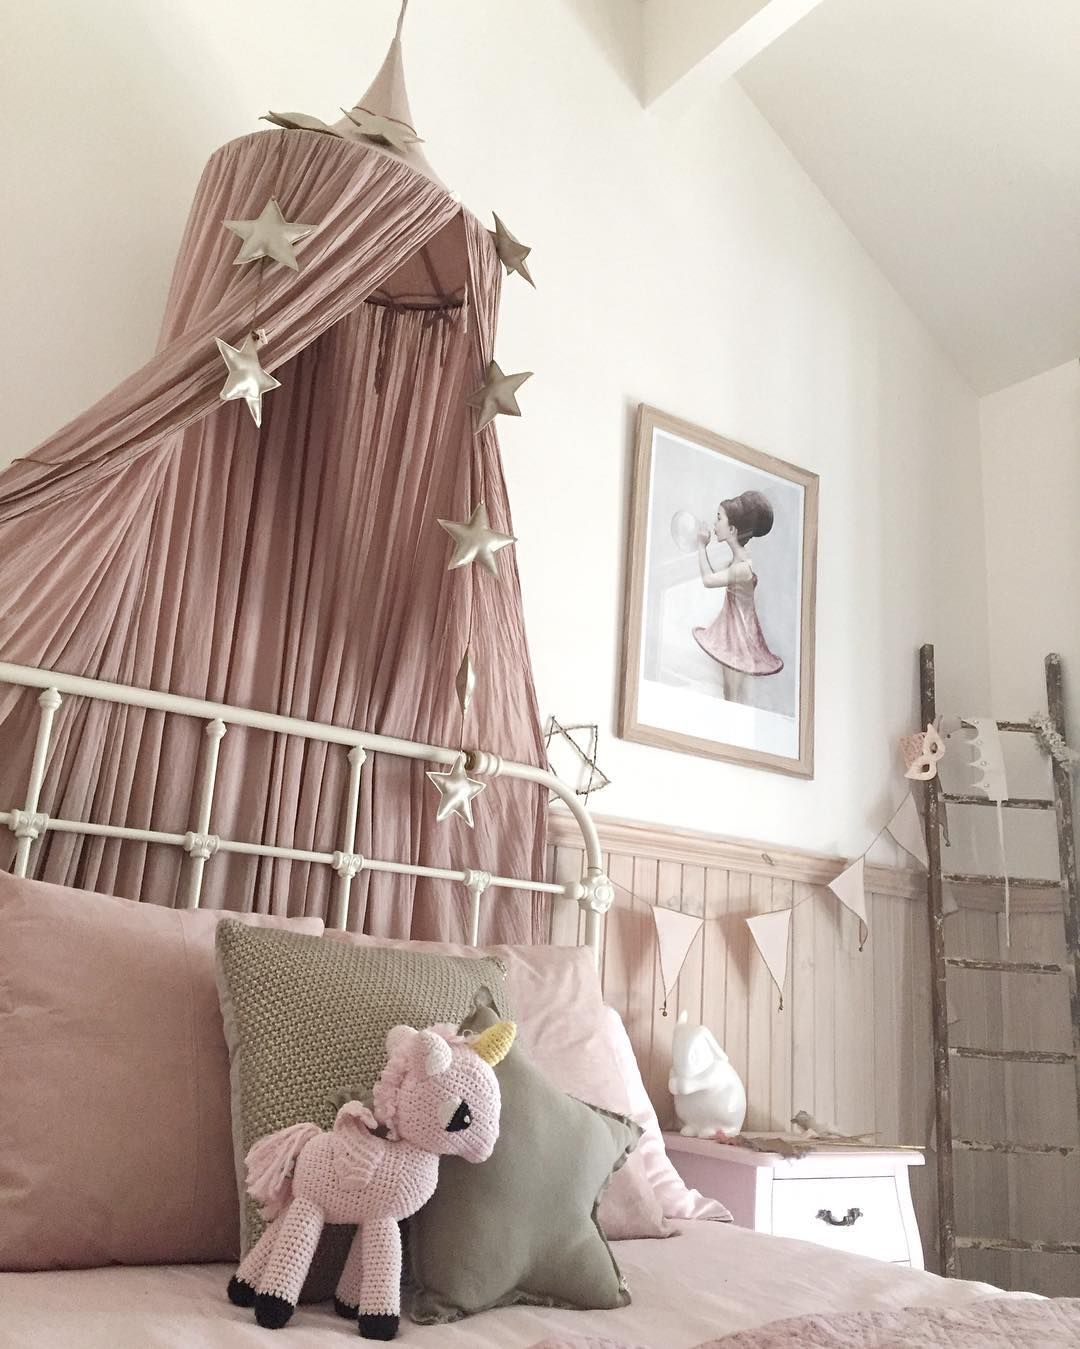 Dusty Pink Canopy Amp Gold Mini Star Garland Kids Room